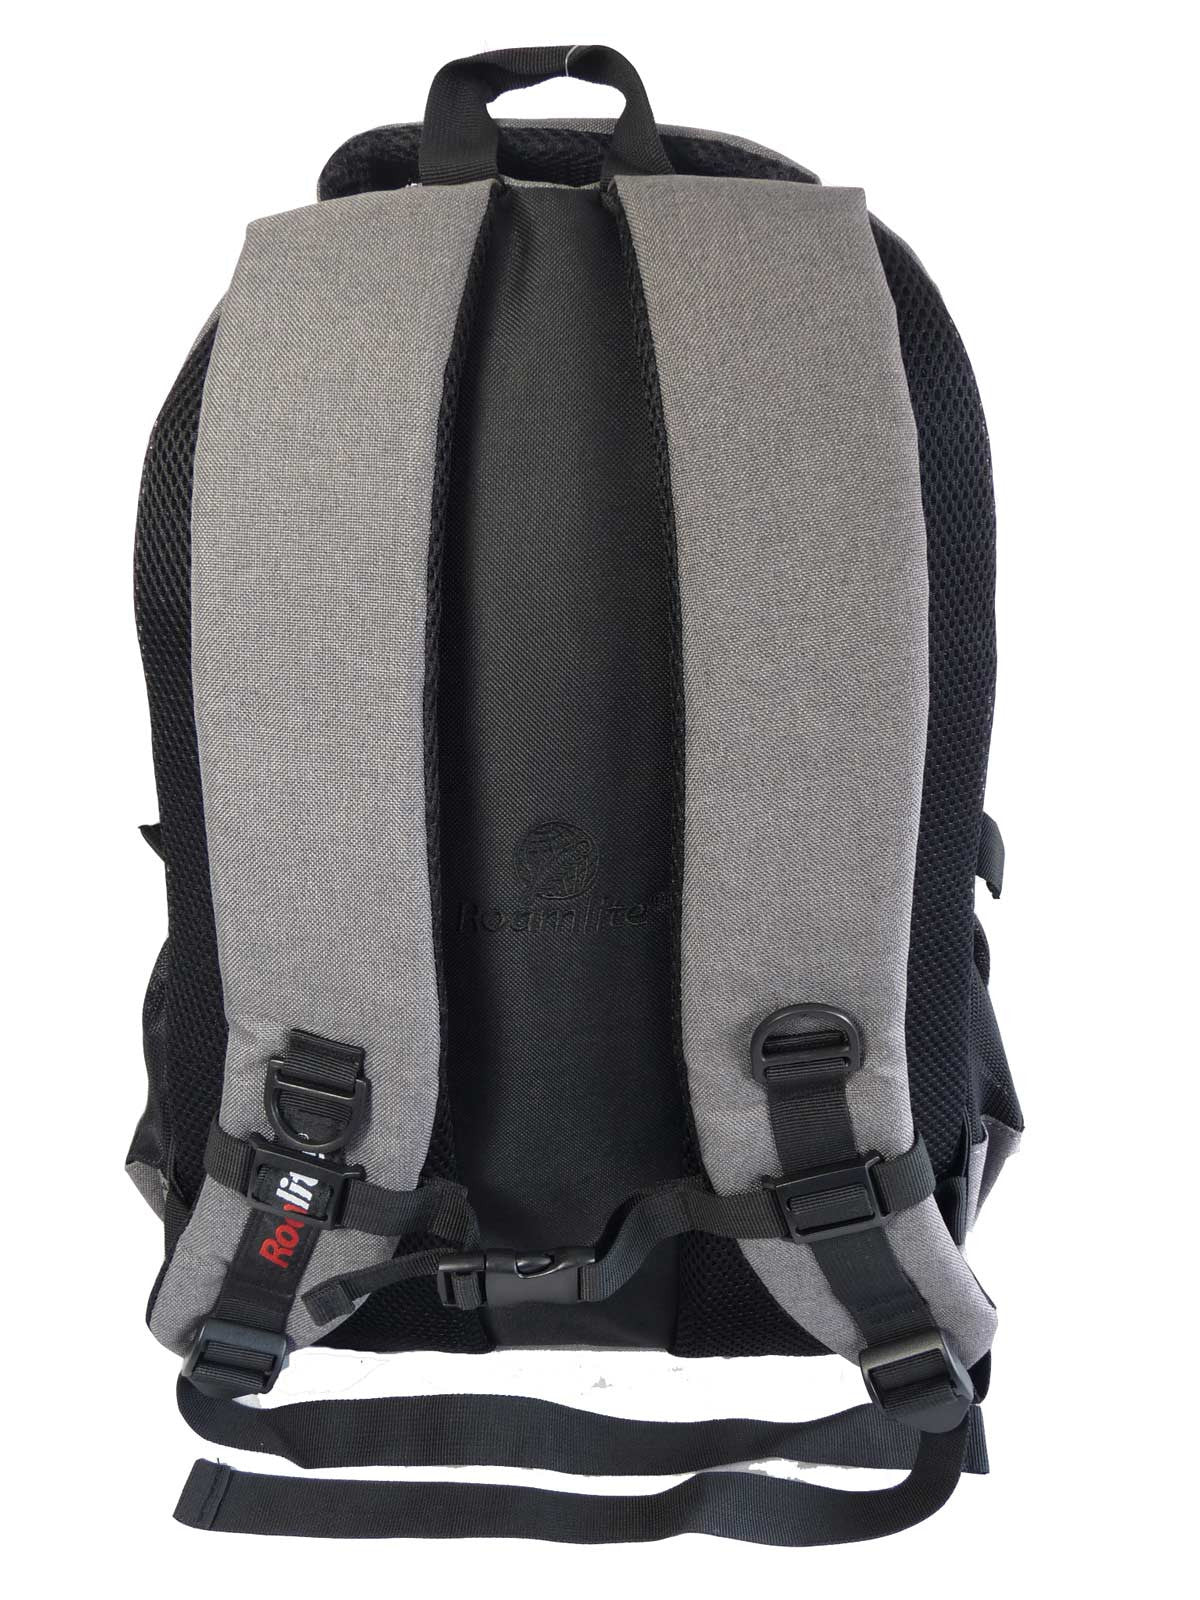 Laptop Macbook Backpack Rucksack Bag RL43GY Rear View